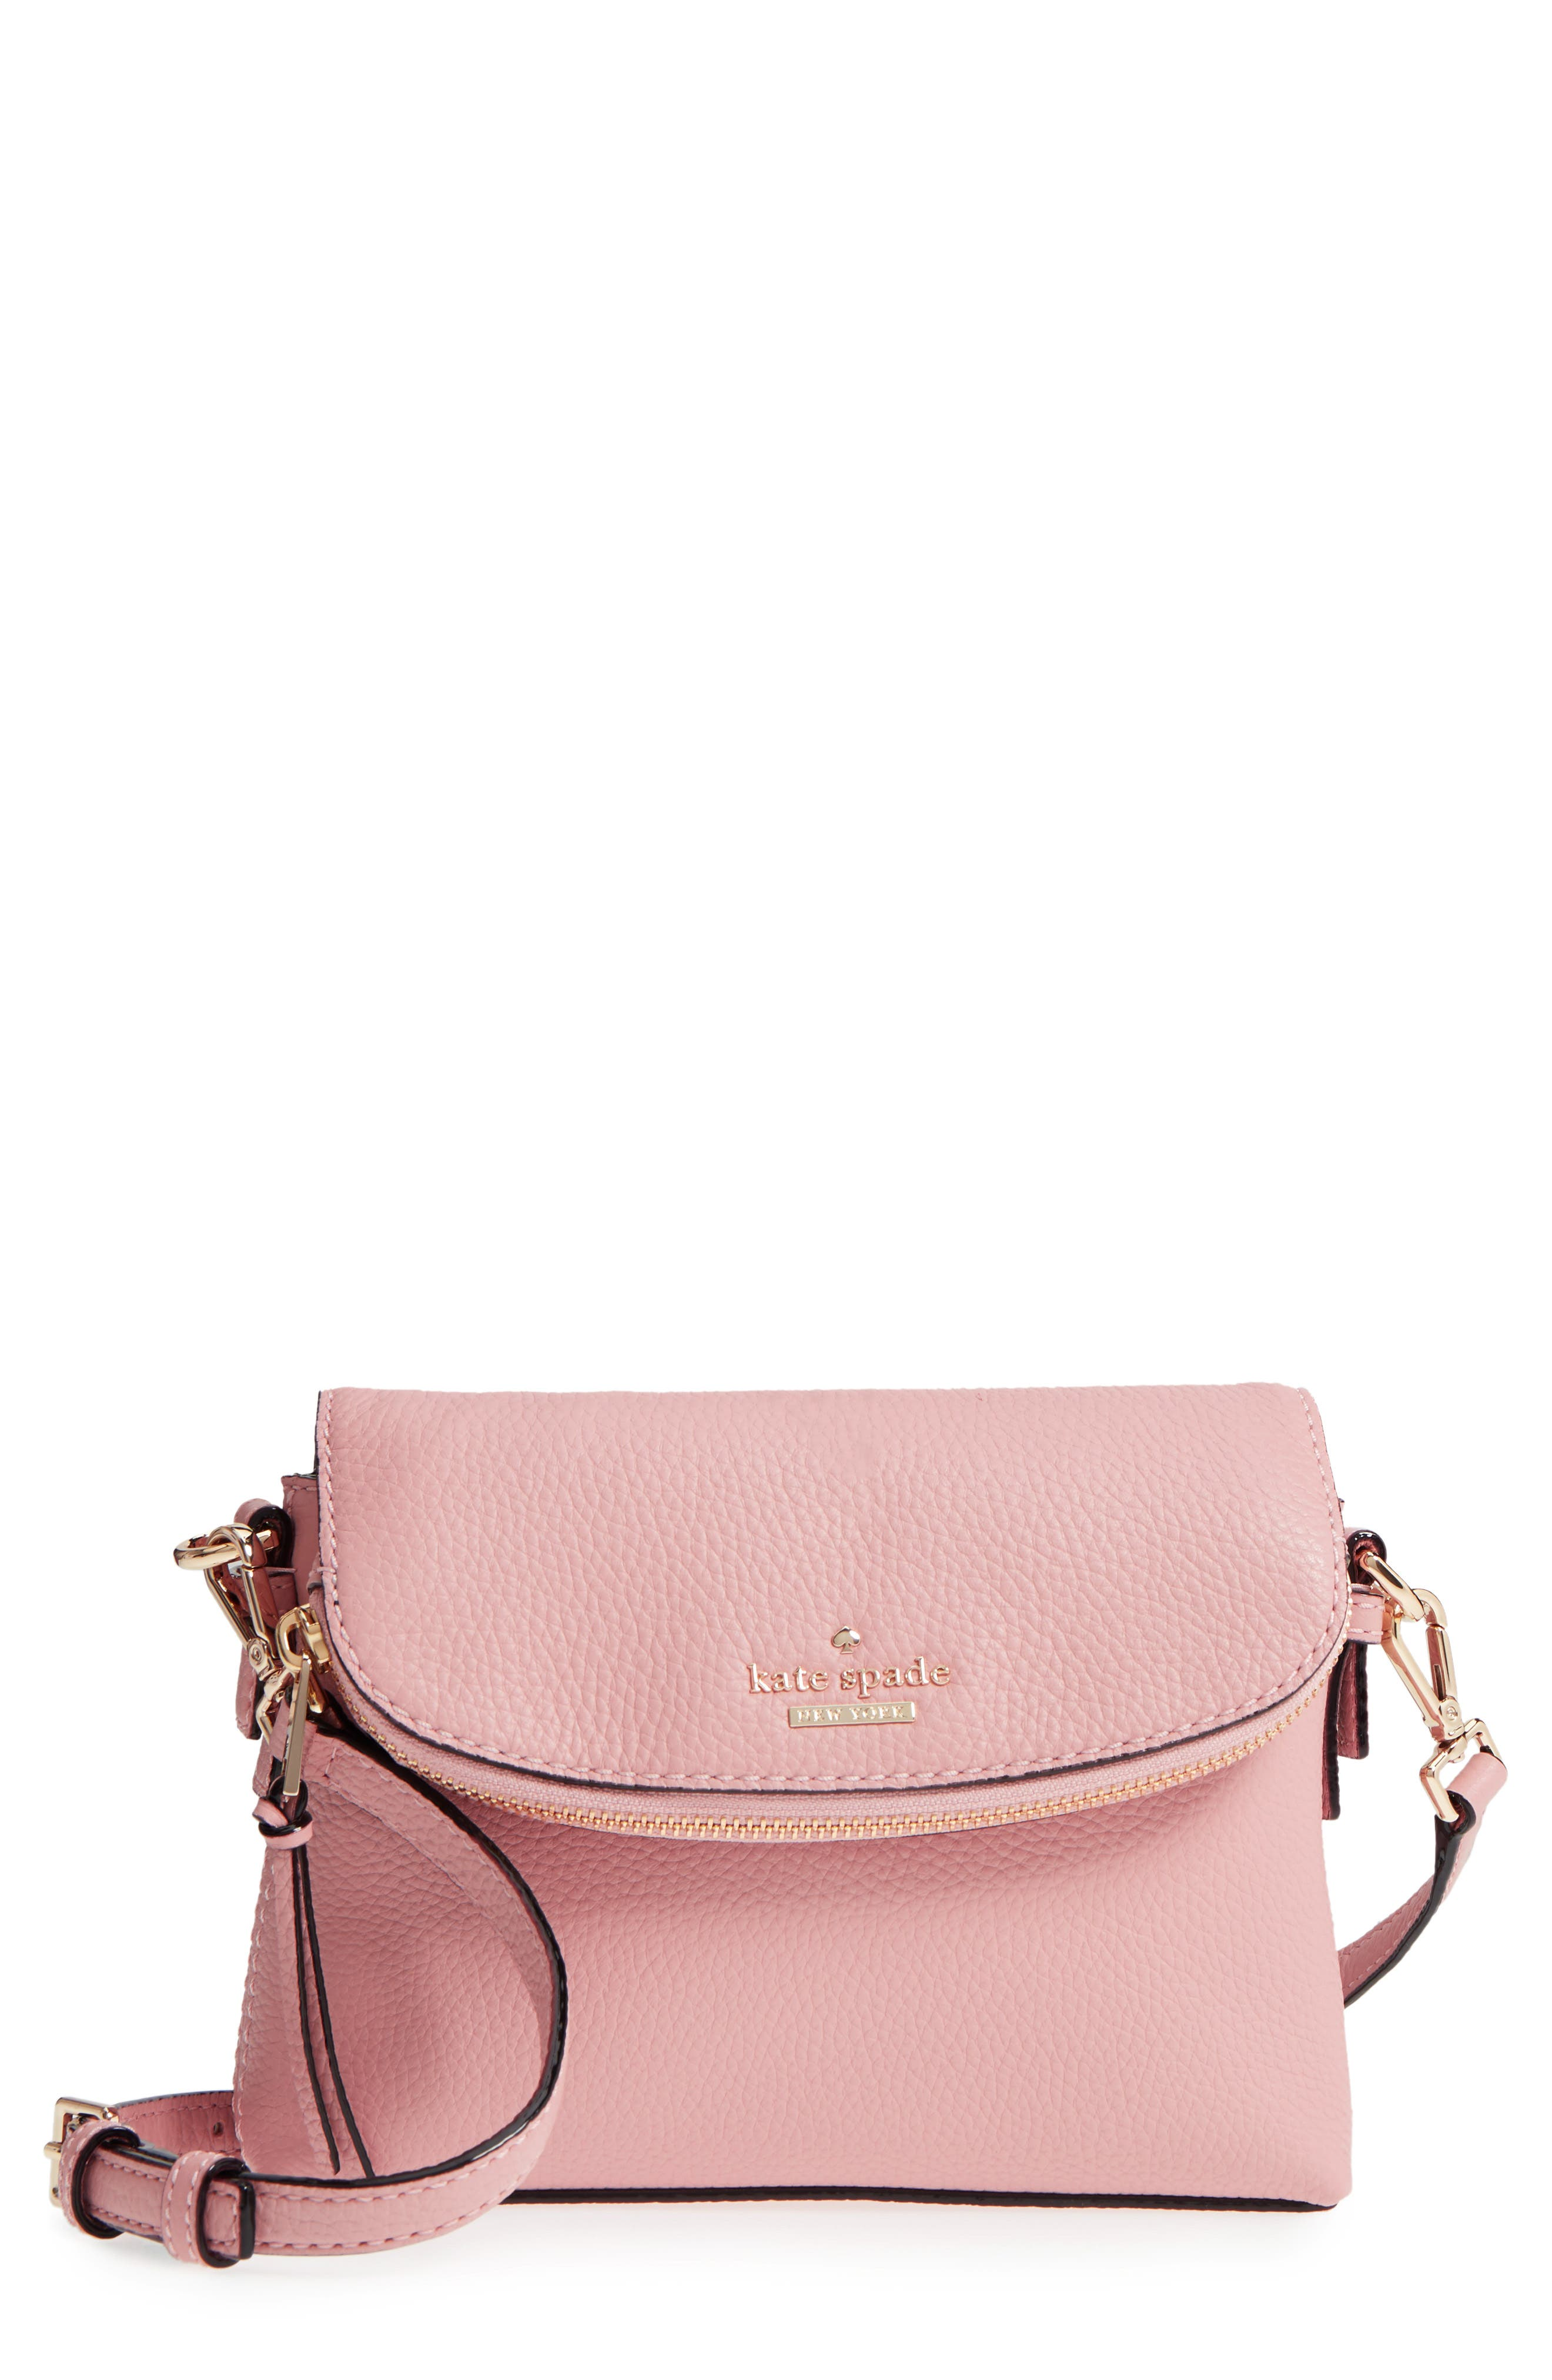 Kate Spade Jackson Street Small Harlyn Leather Crossbody Bag Pink In Rosy Cheeks